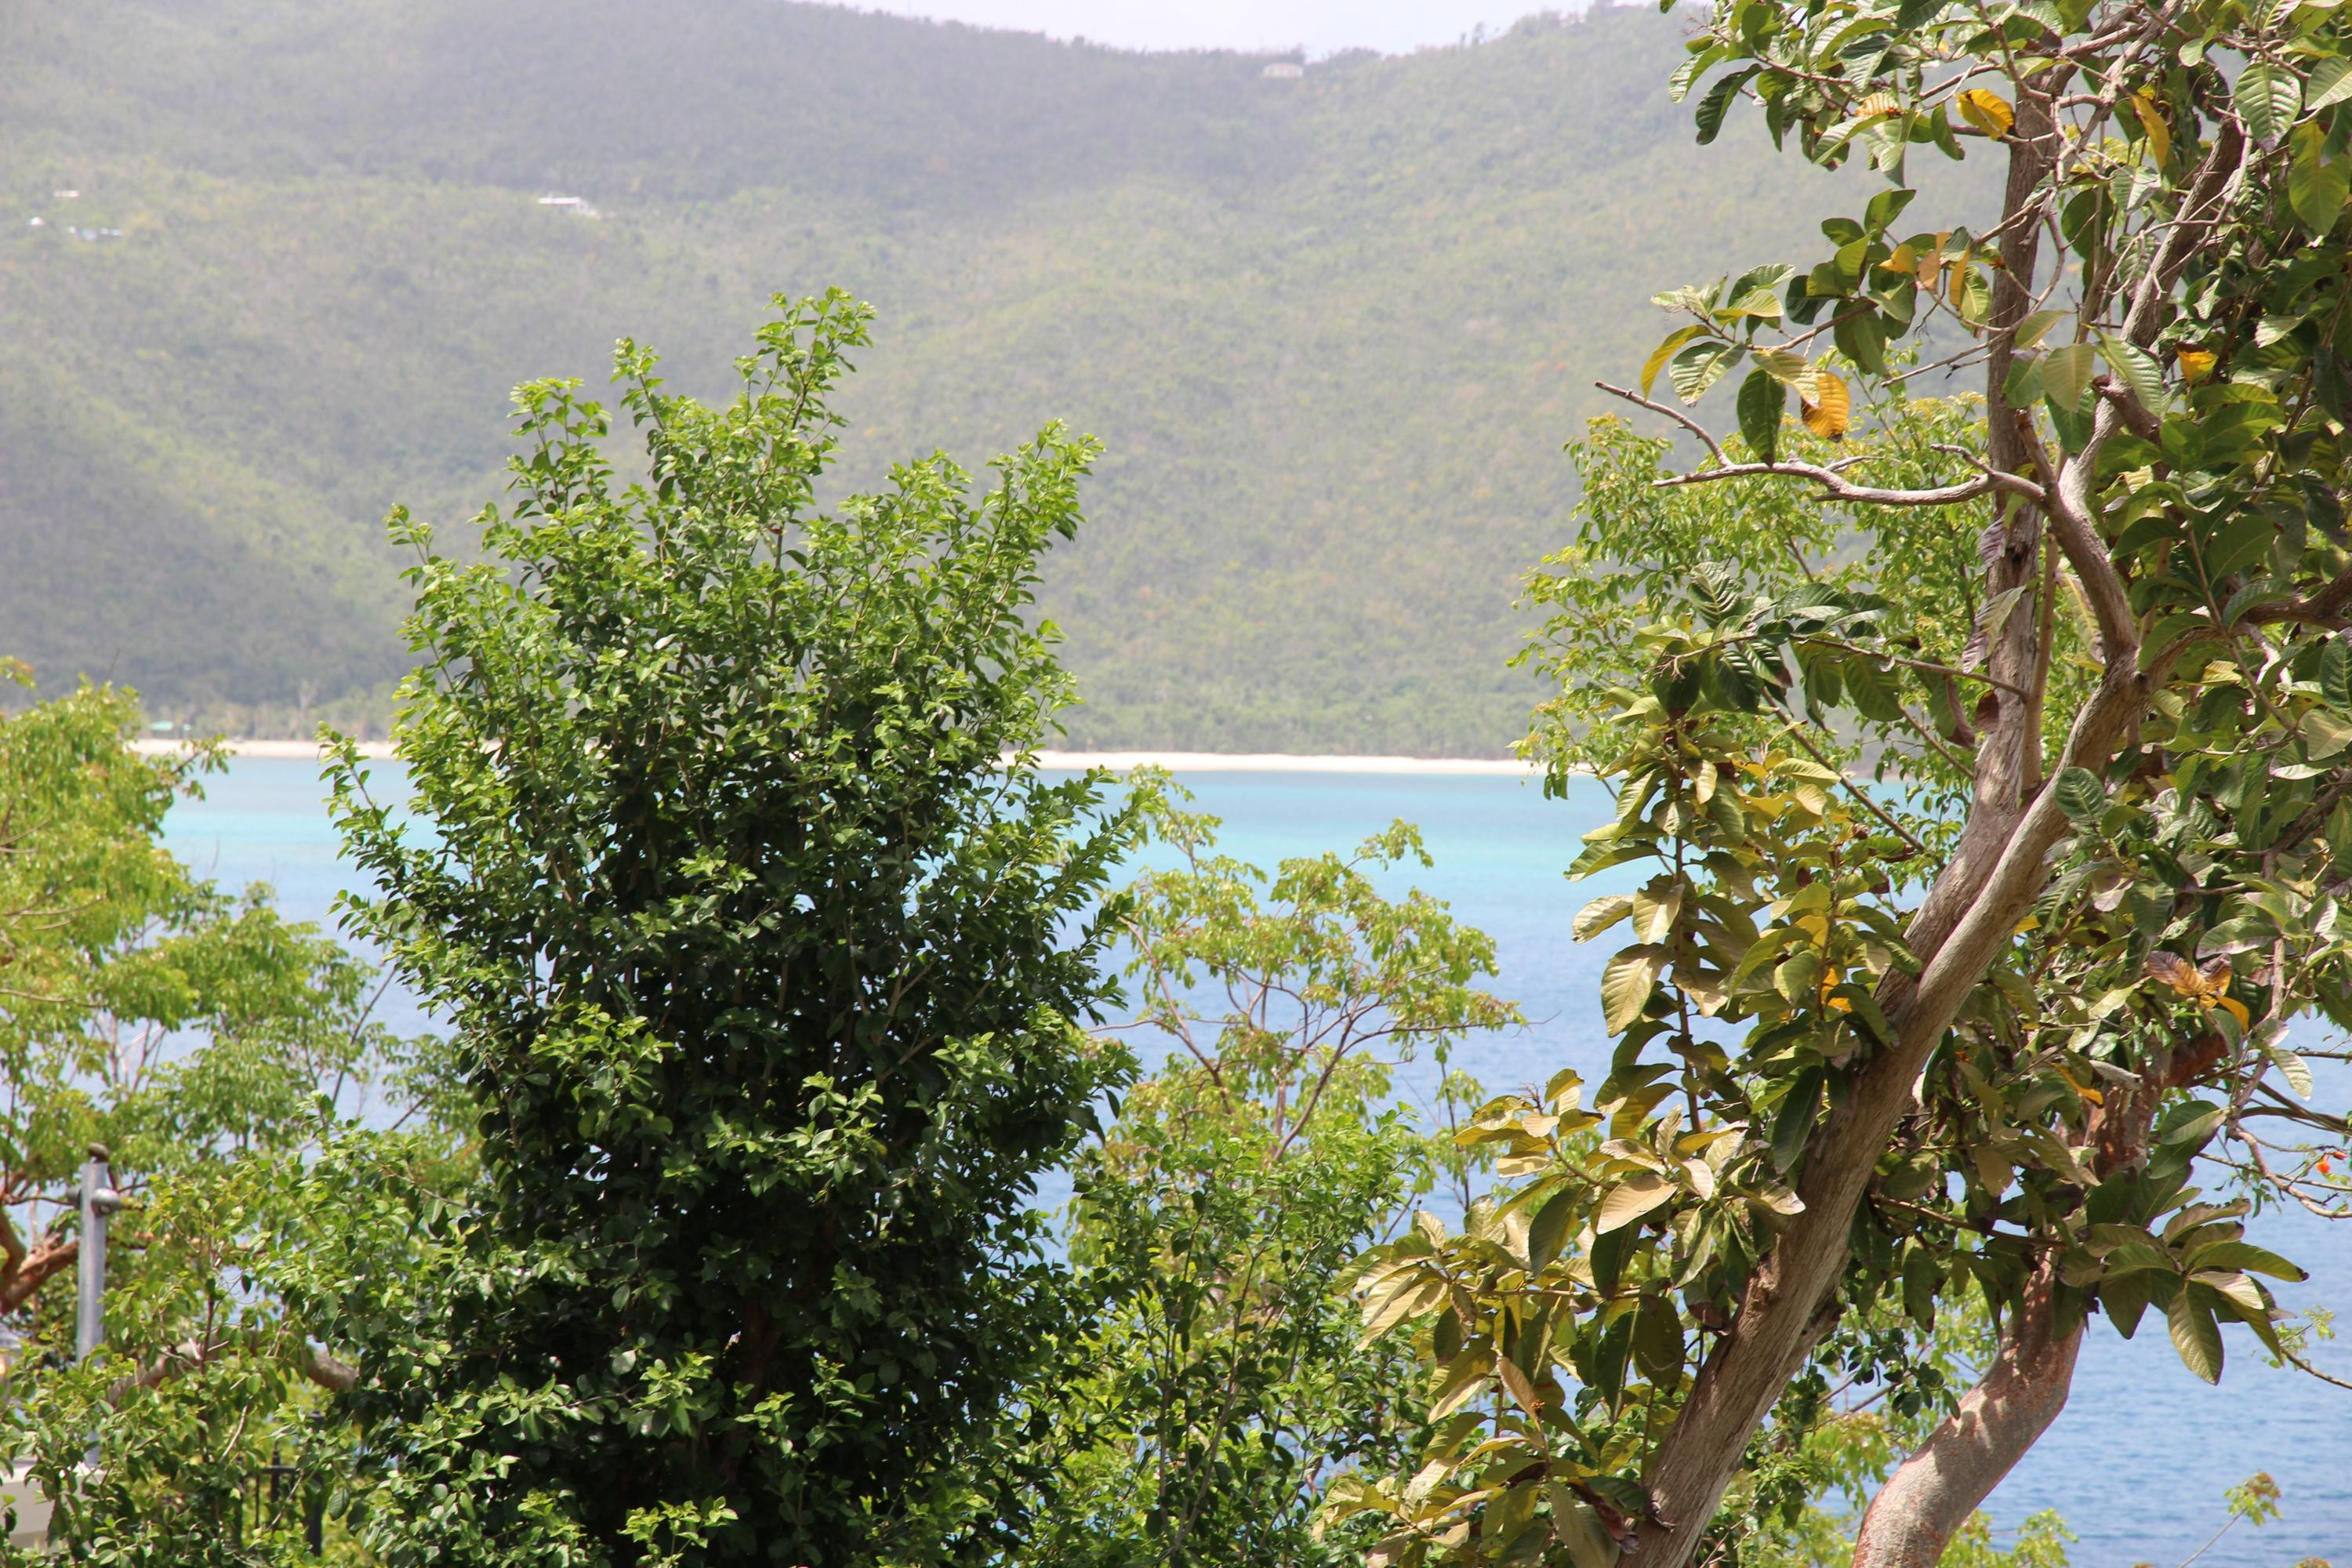 Views across Magens Bay